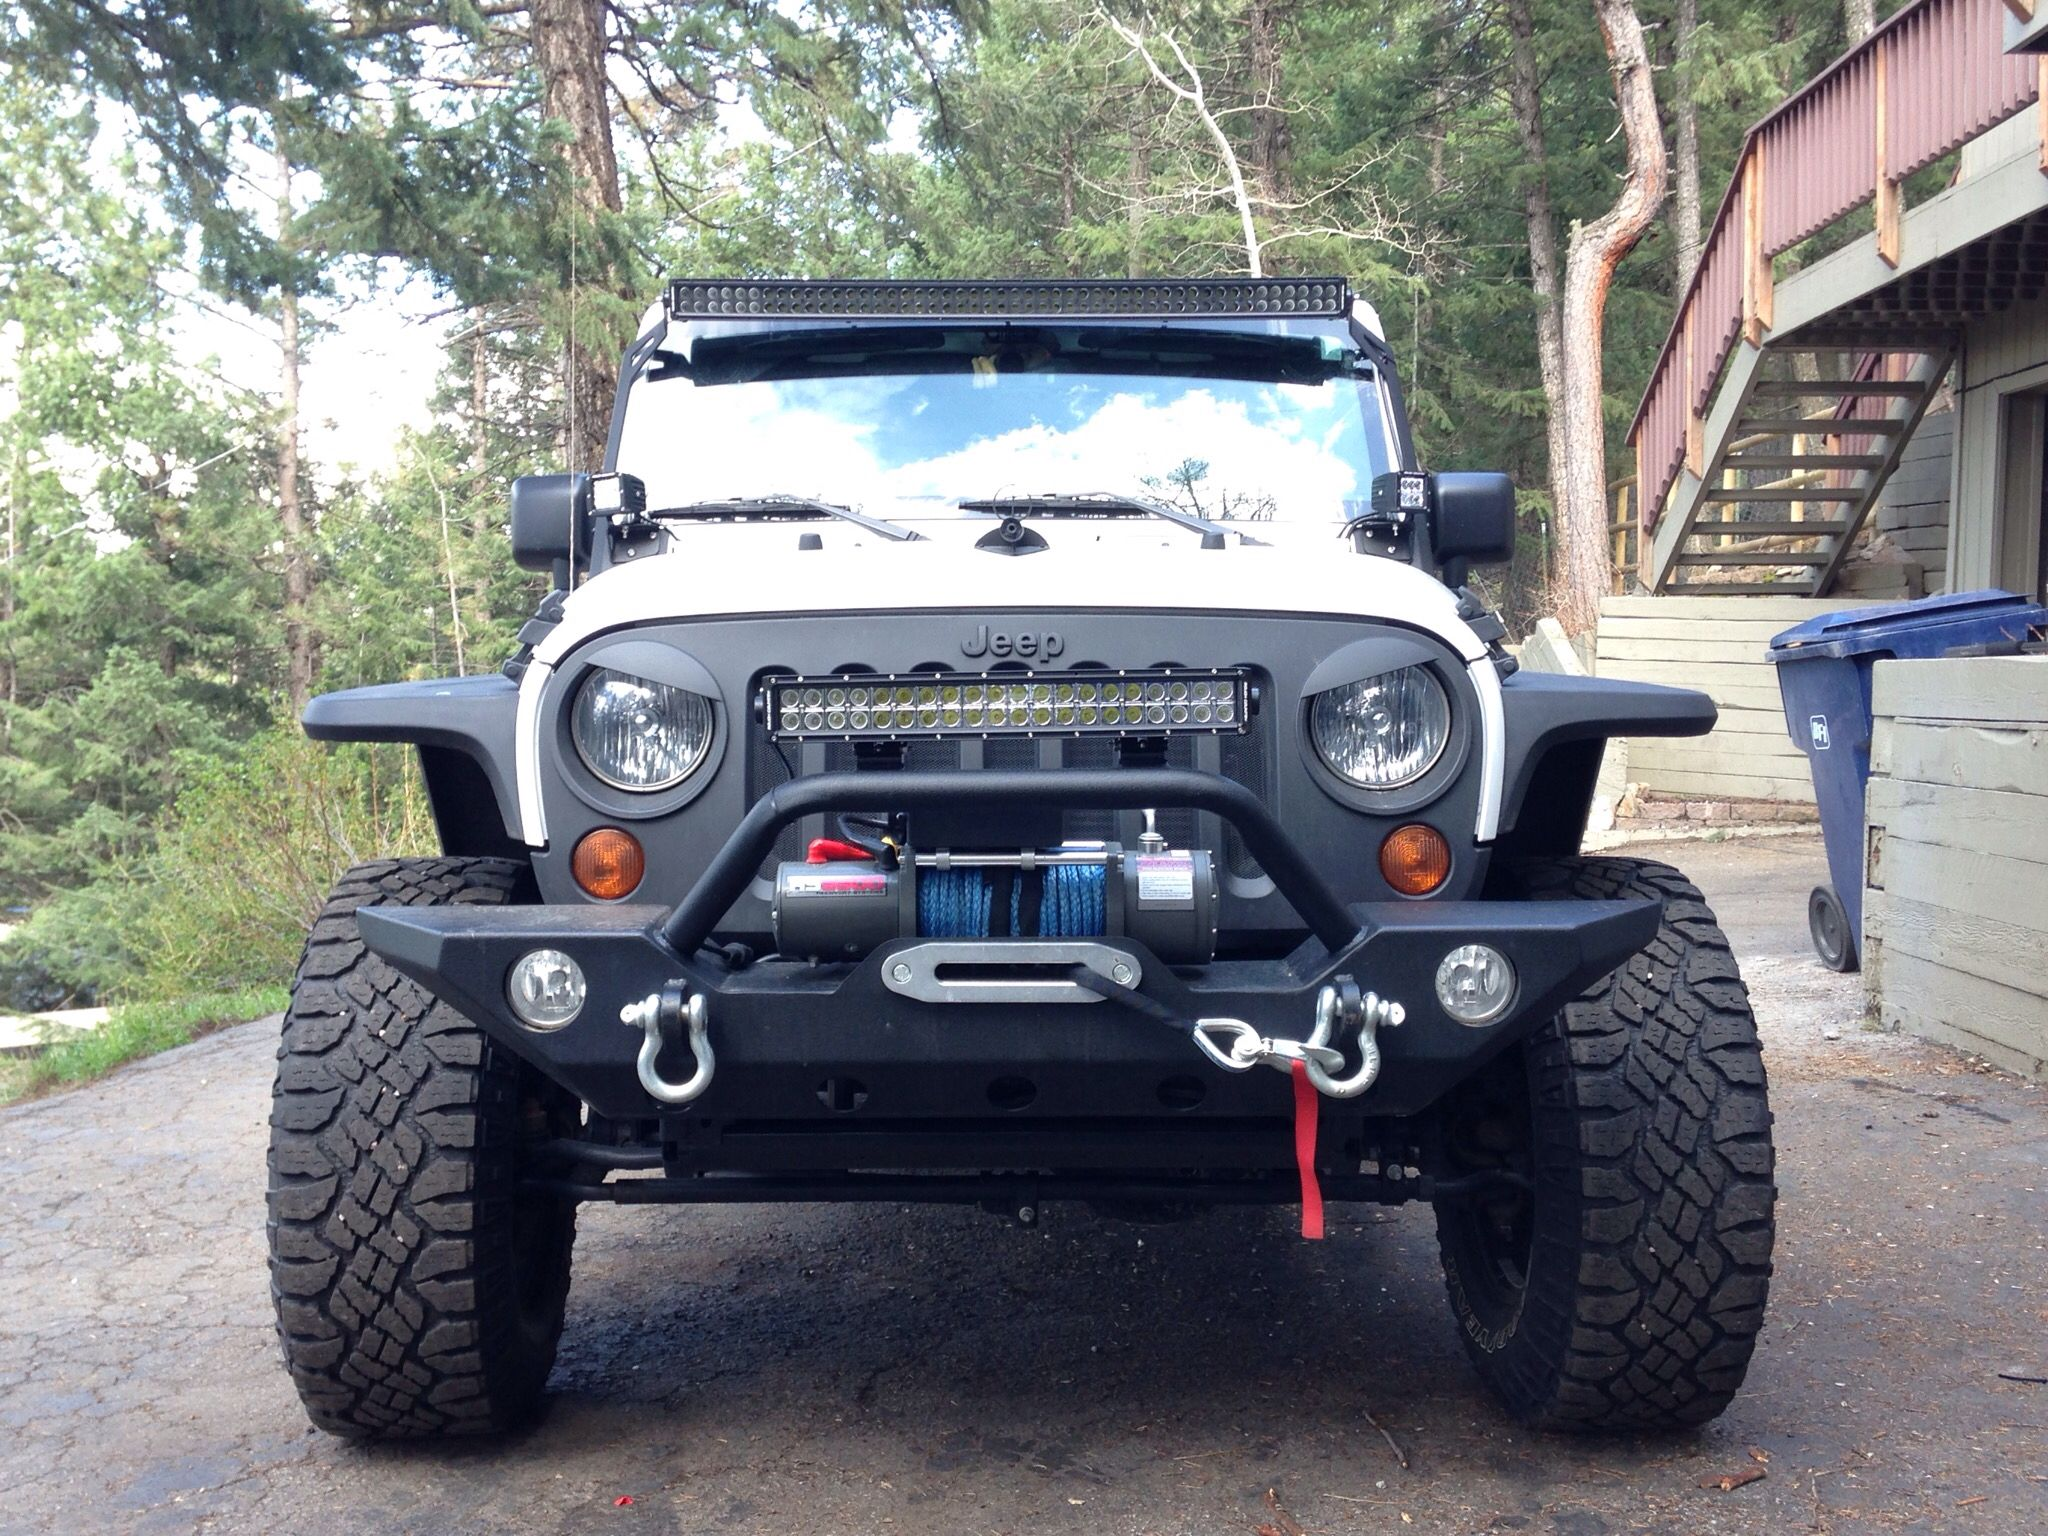 50 Light Bar 20 Light Bar 2 Cube Lights Jeep Wrangler 2013 Jk